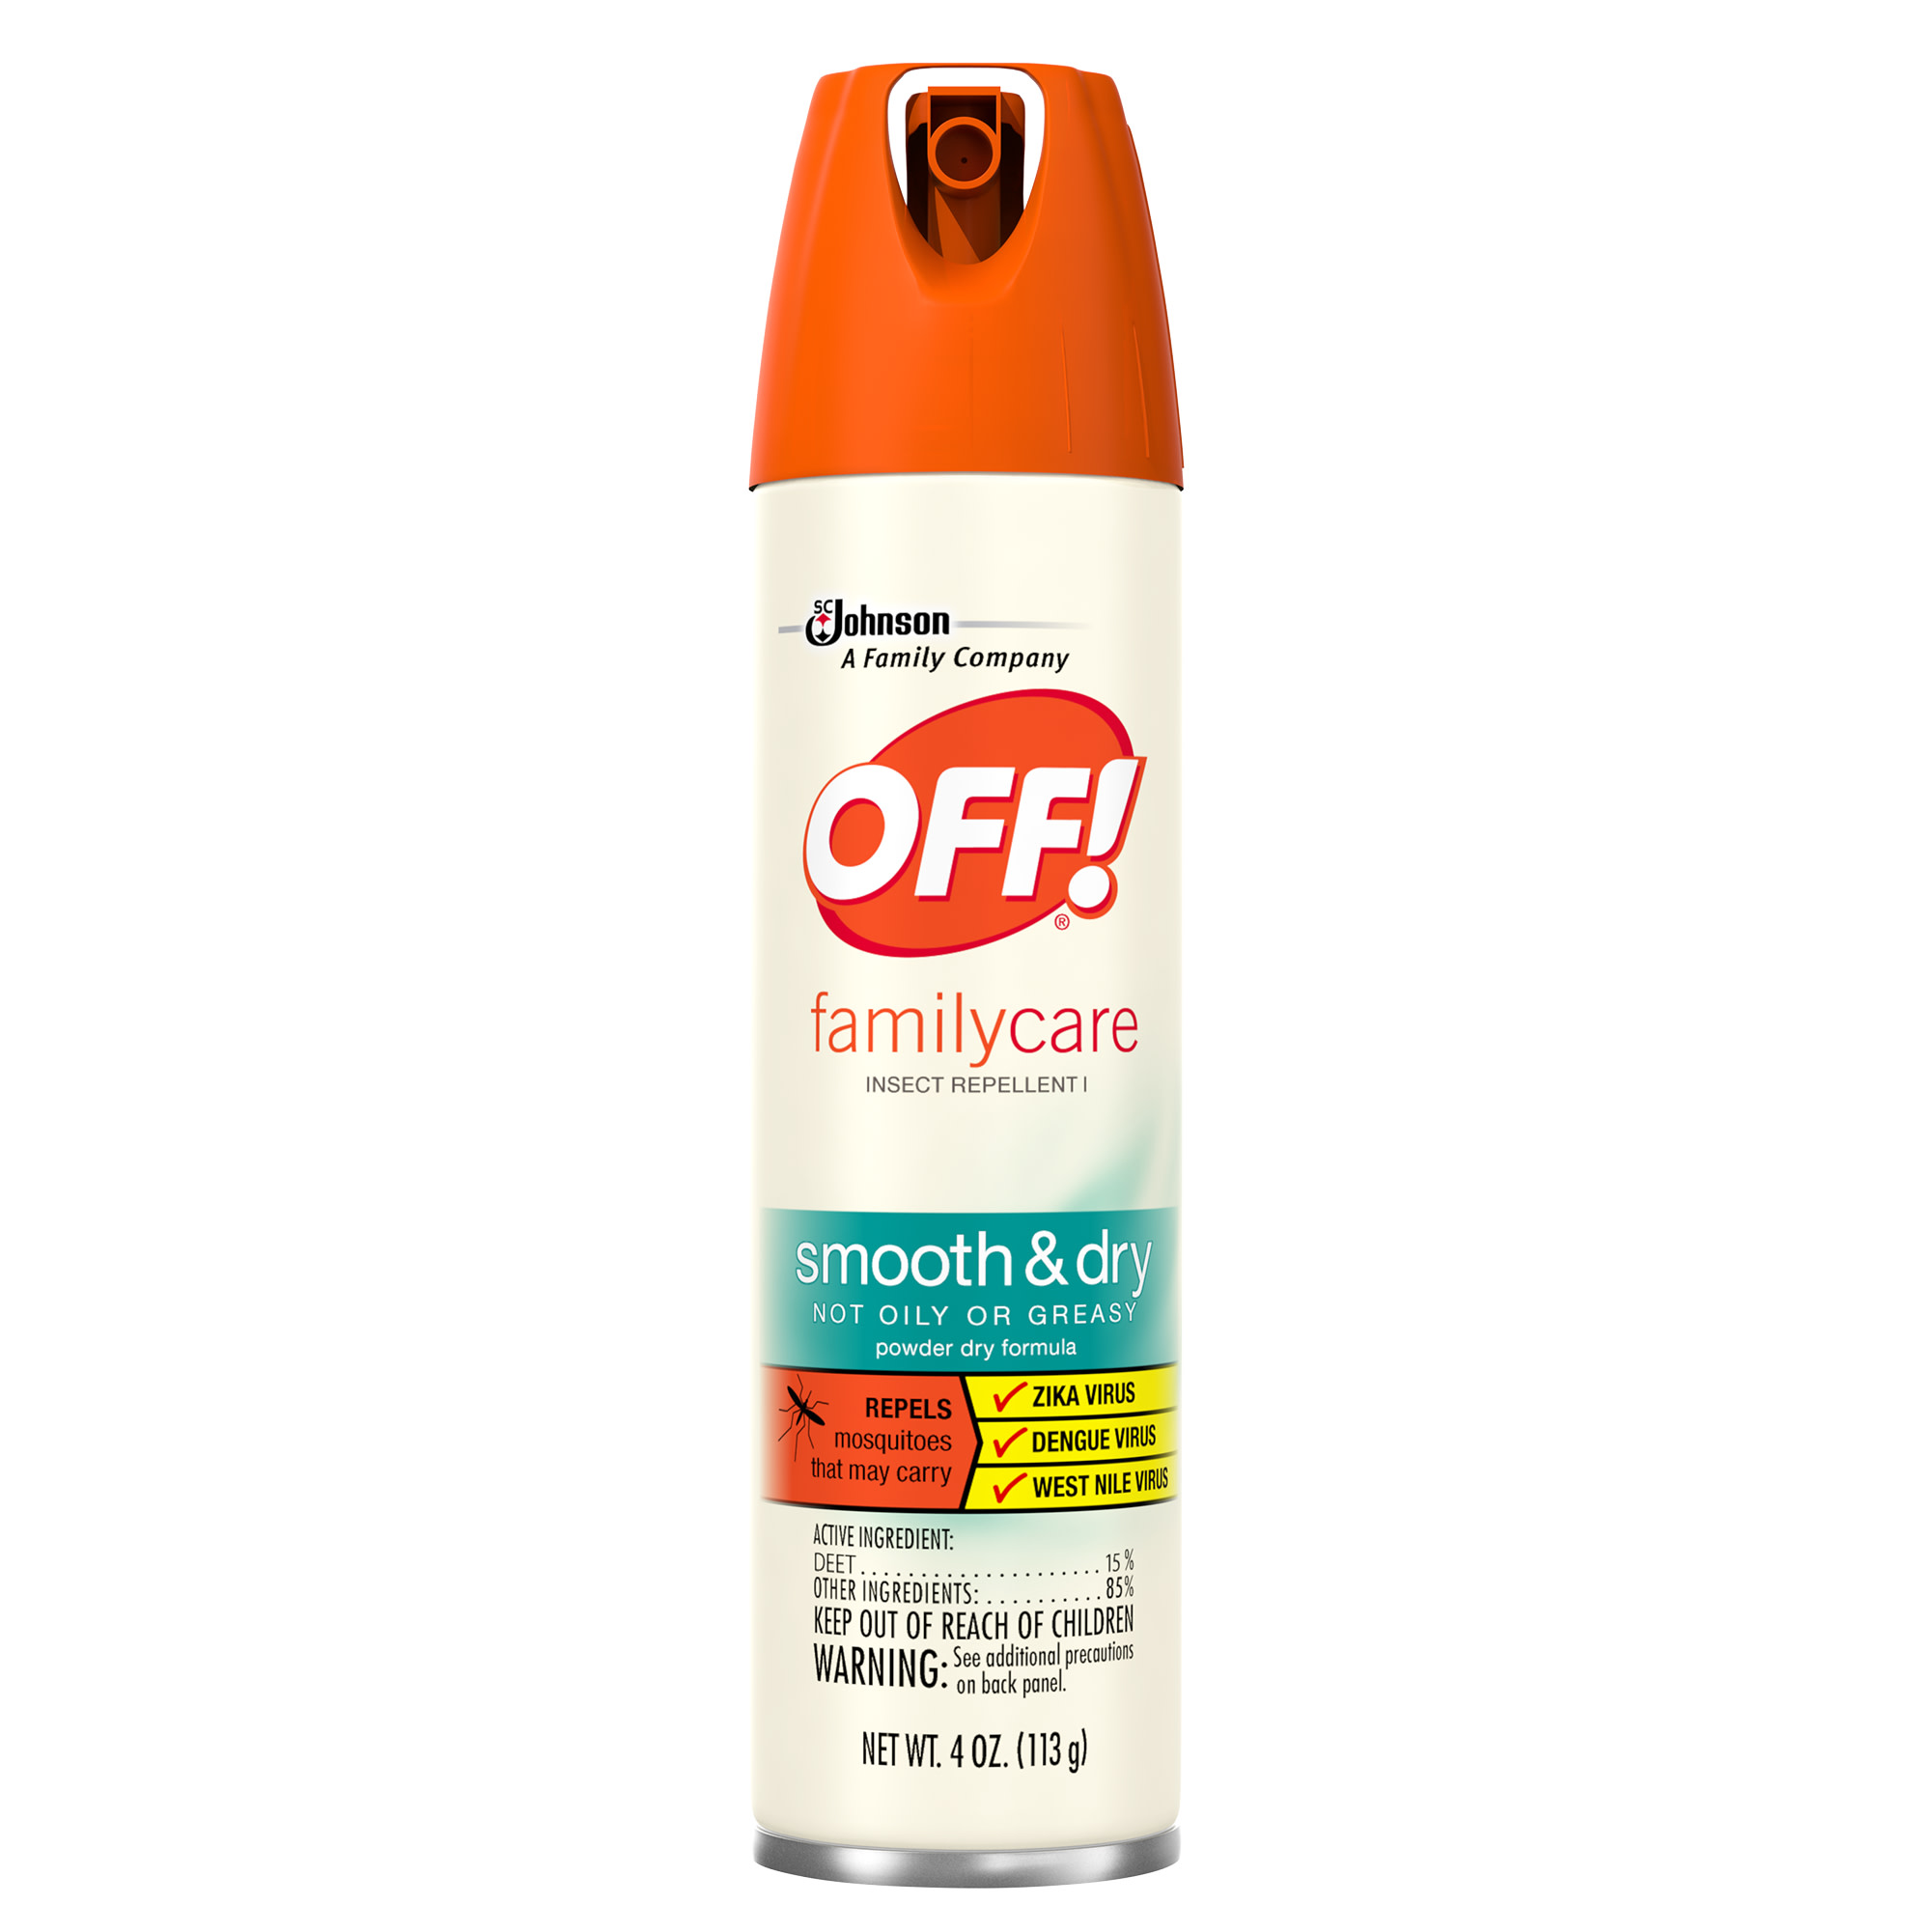 OFF! FamilyCare Insect Repellent I, Smooth & Dry, 4 Ounces, 1 count